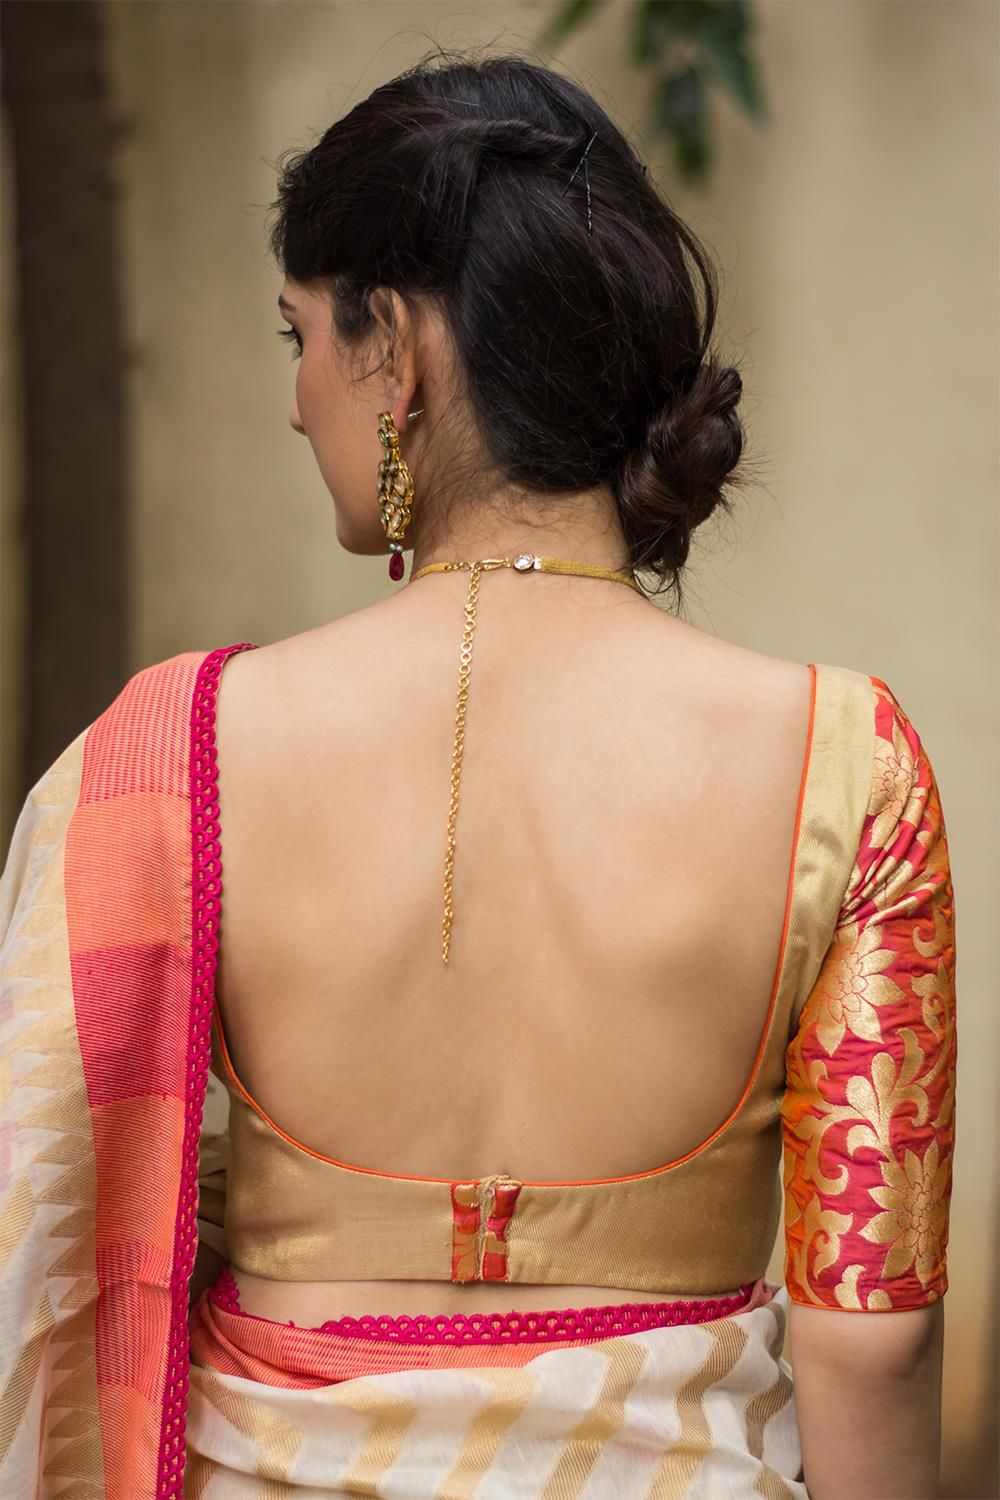 Pin By Ramona John On Saree Backless Blouse Designs Stylish Blouse Design Trendy Blouse Designs